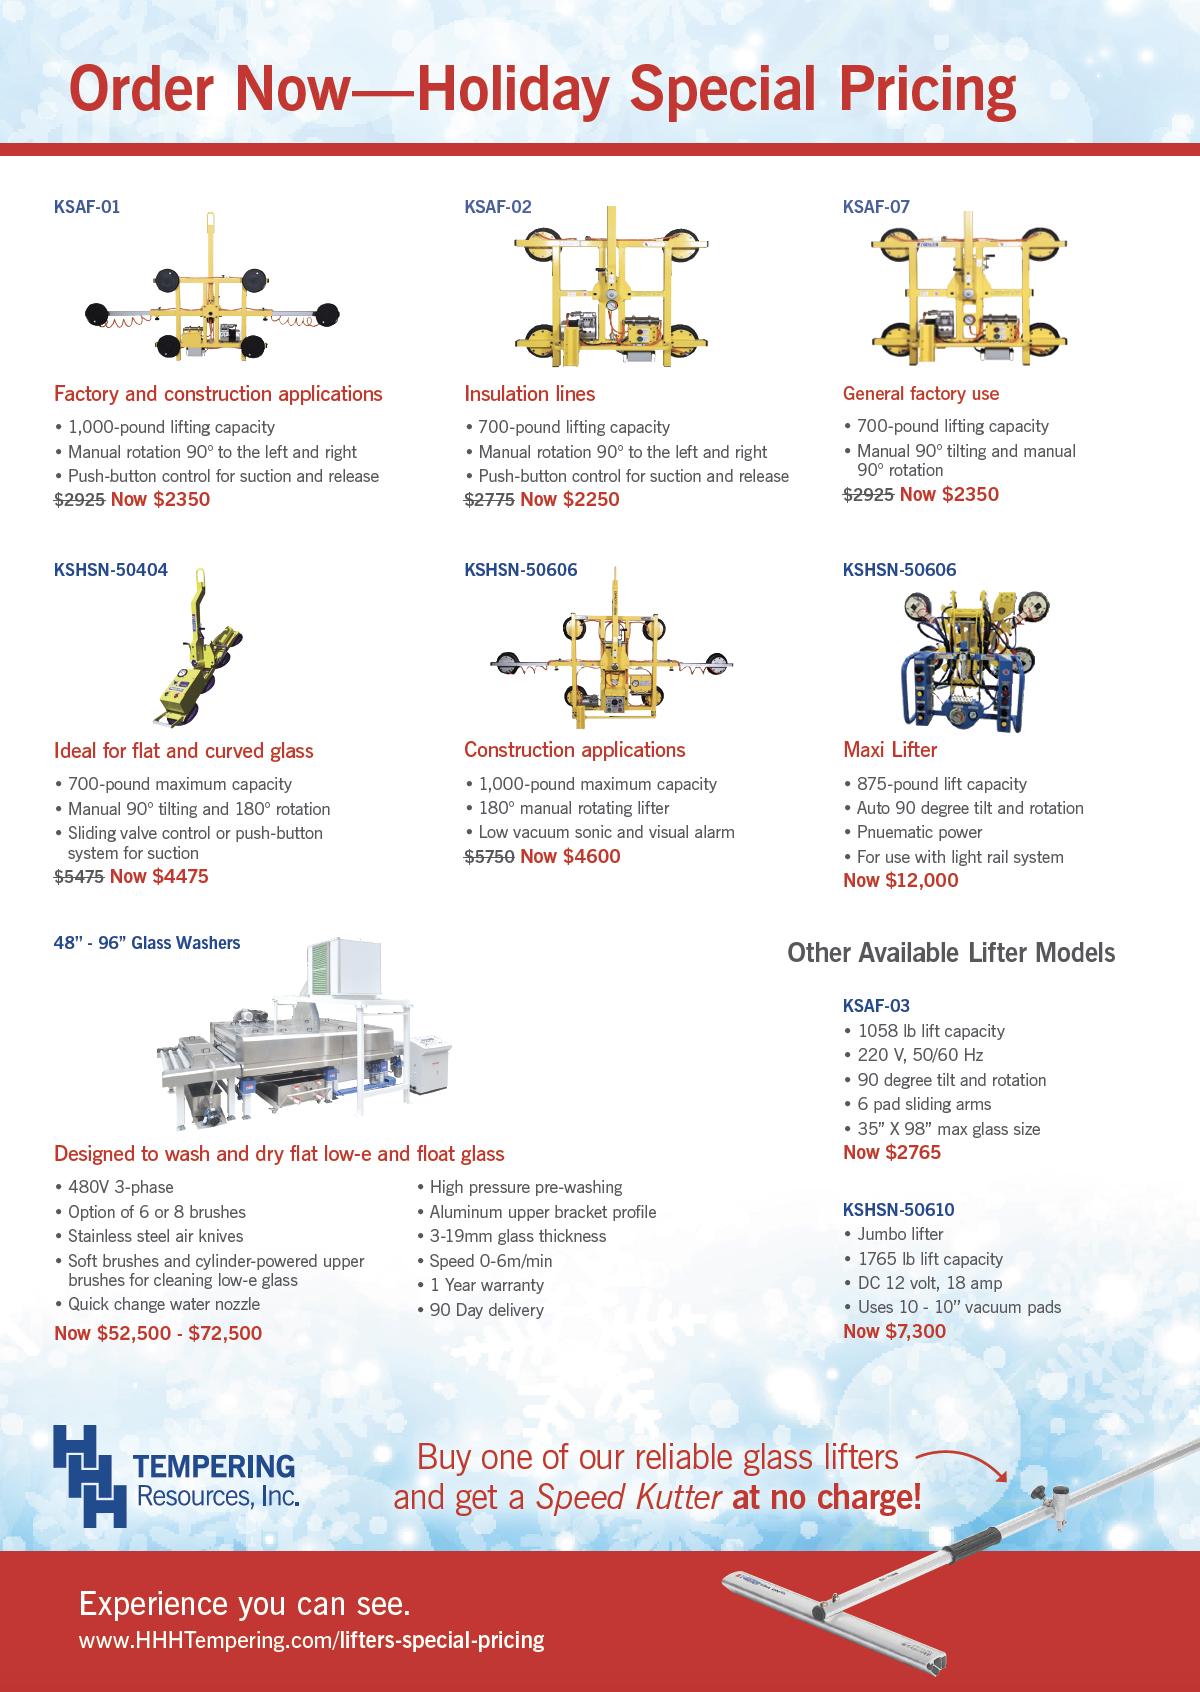 HHH Tempering Resources | Glass Lifters and Washers Sale